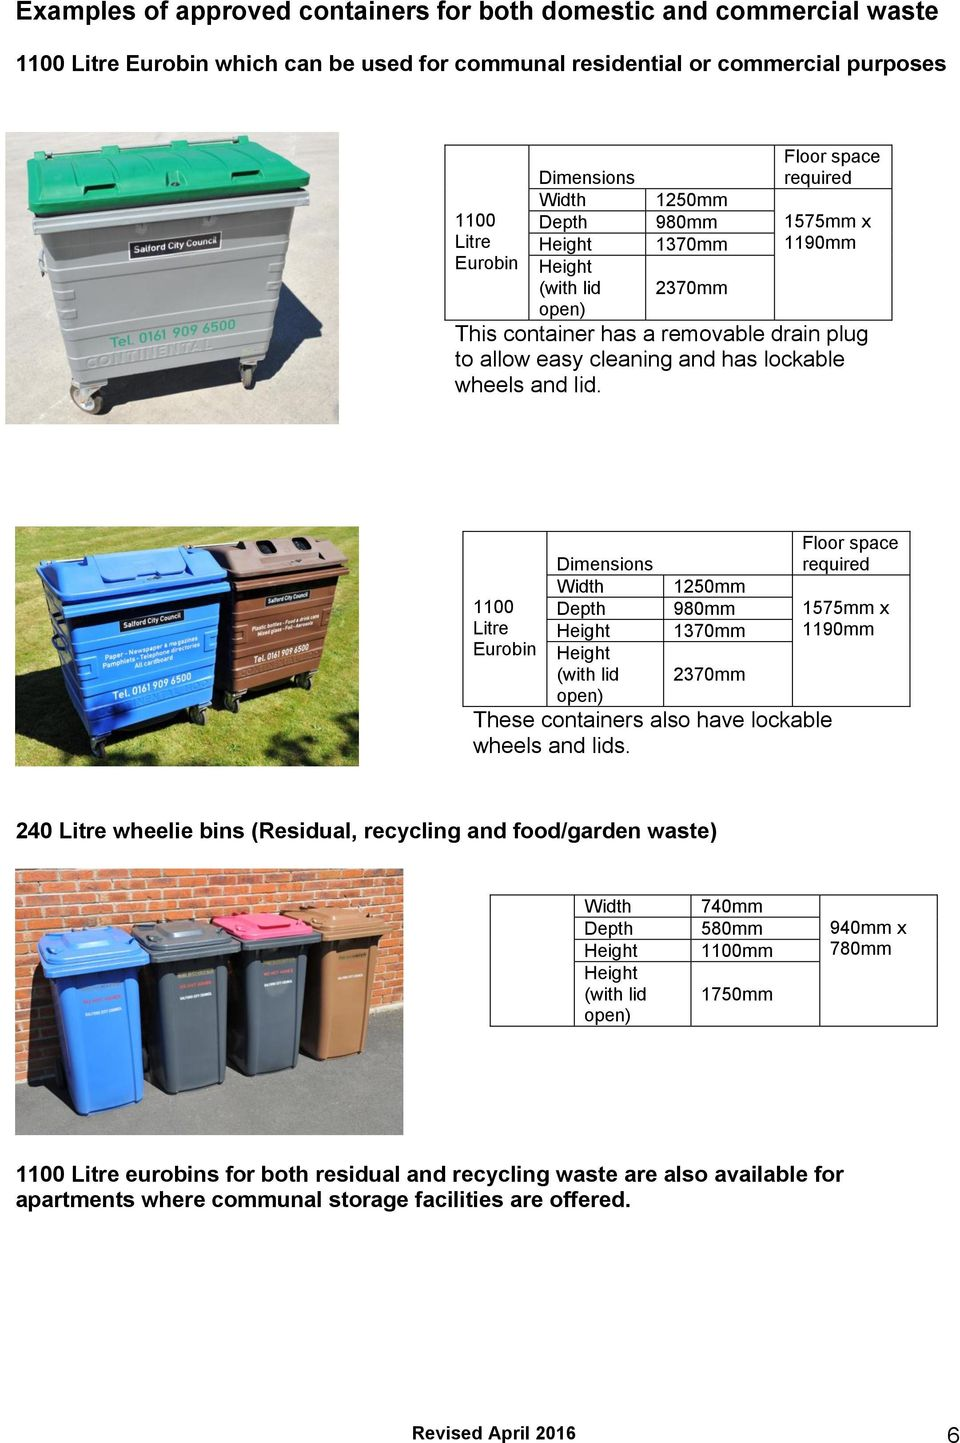 1100 Litre Eurobin Dimensions Width Depth (with lid open) 1250mm 980mm 1370mm 2370mm These containers also have lockable wheels and lids.